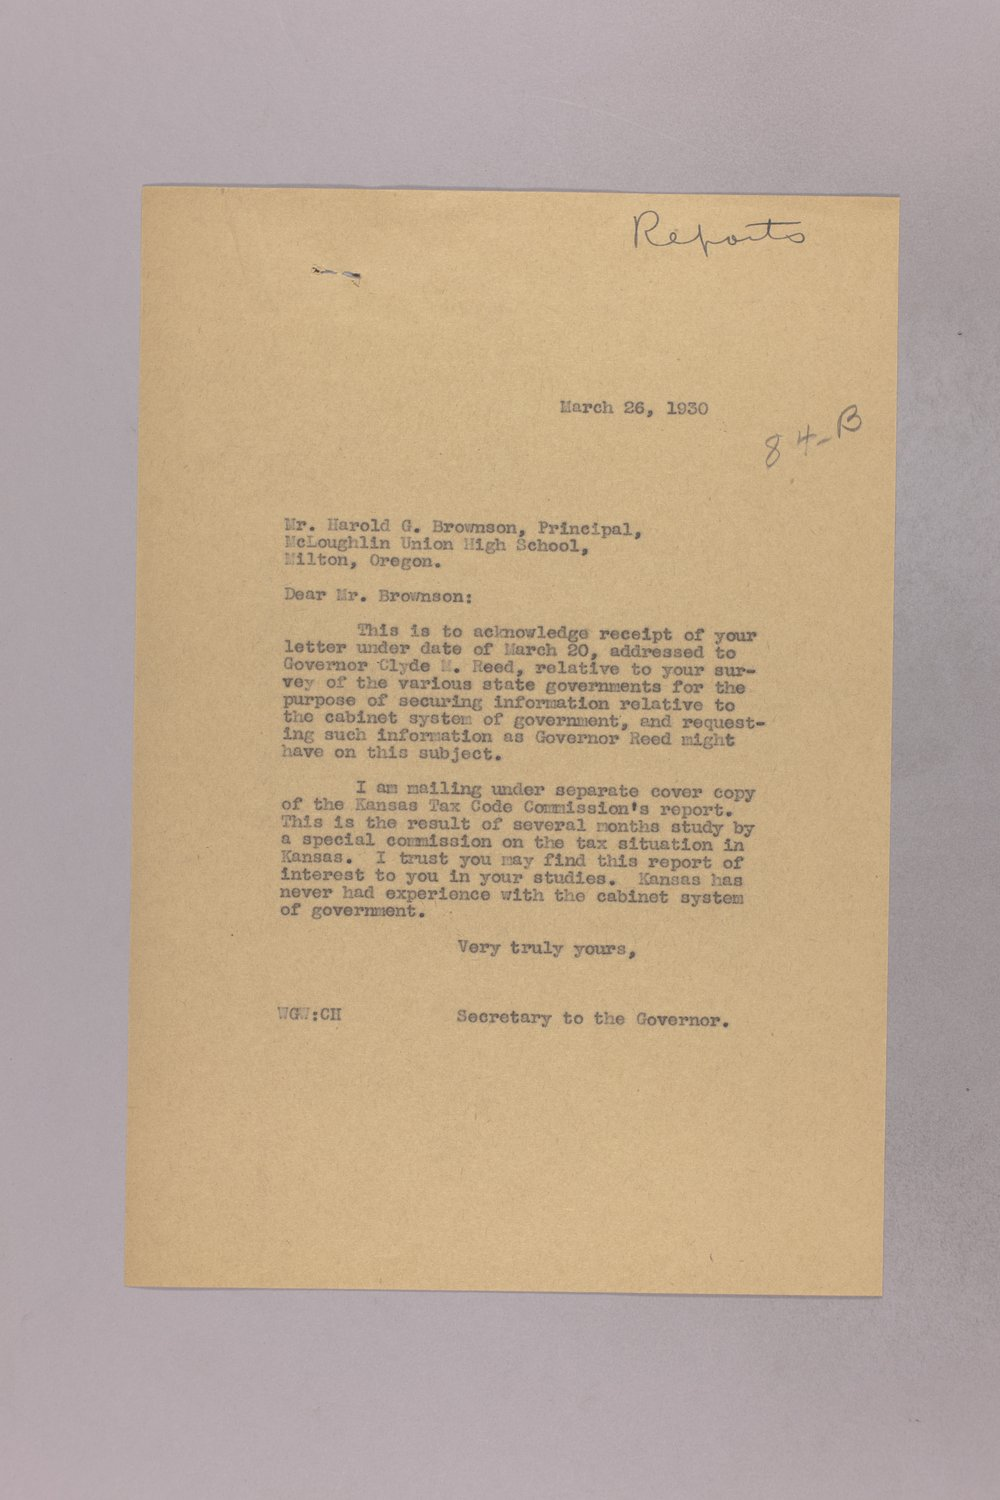 Governor Clyde M. Reed correspondence, reports - 1